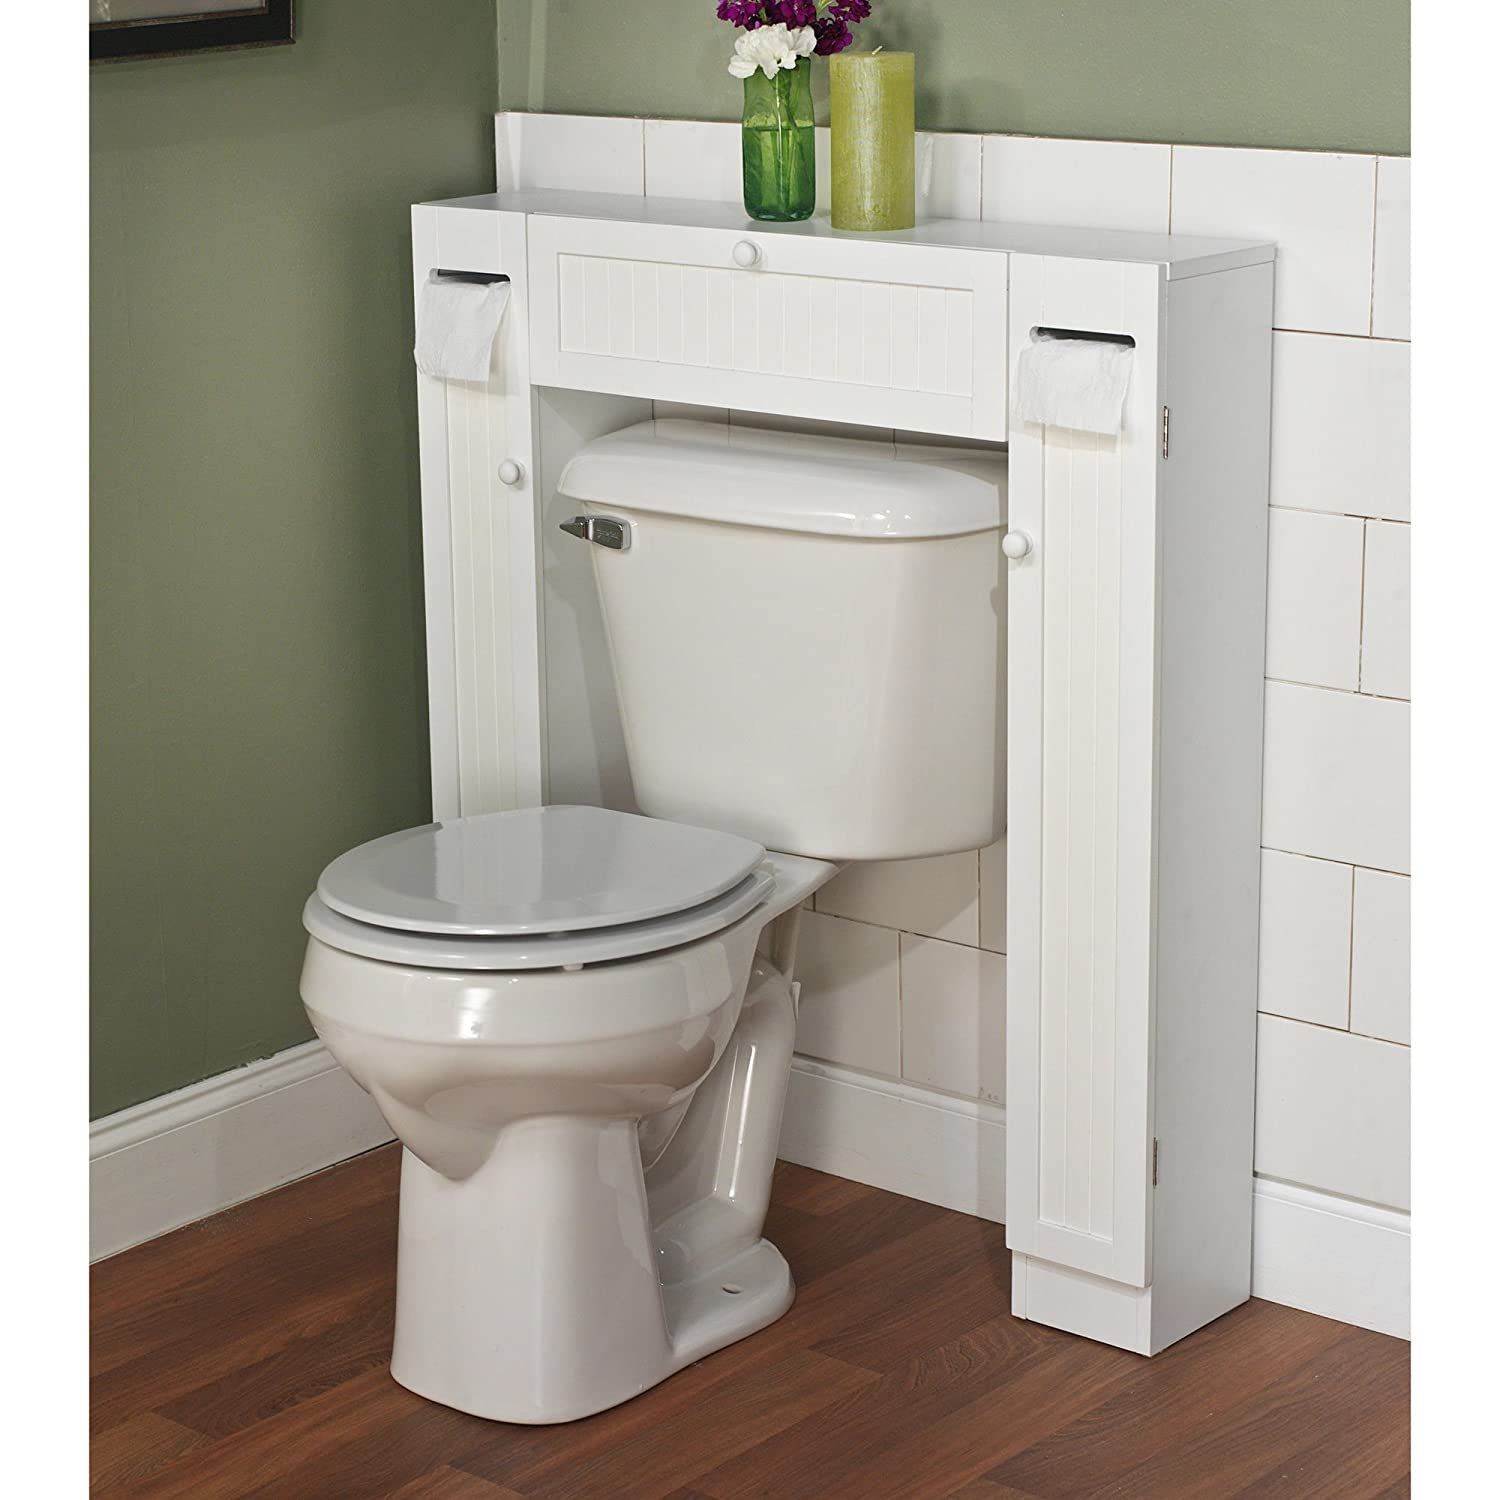 amazoncom over the toilet space saver by simple living 1 center cabinet and 2 side cabinets in white wood material gives extra storage for every